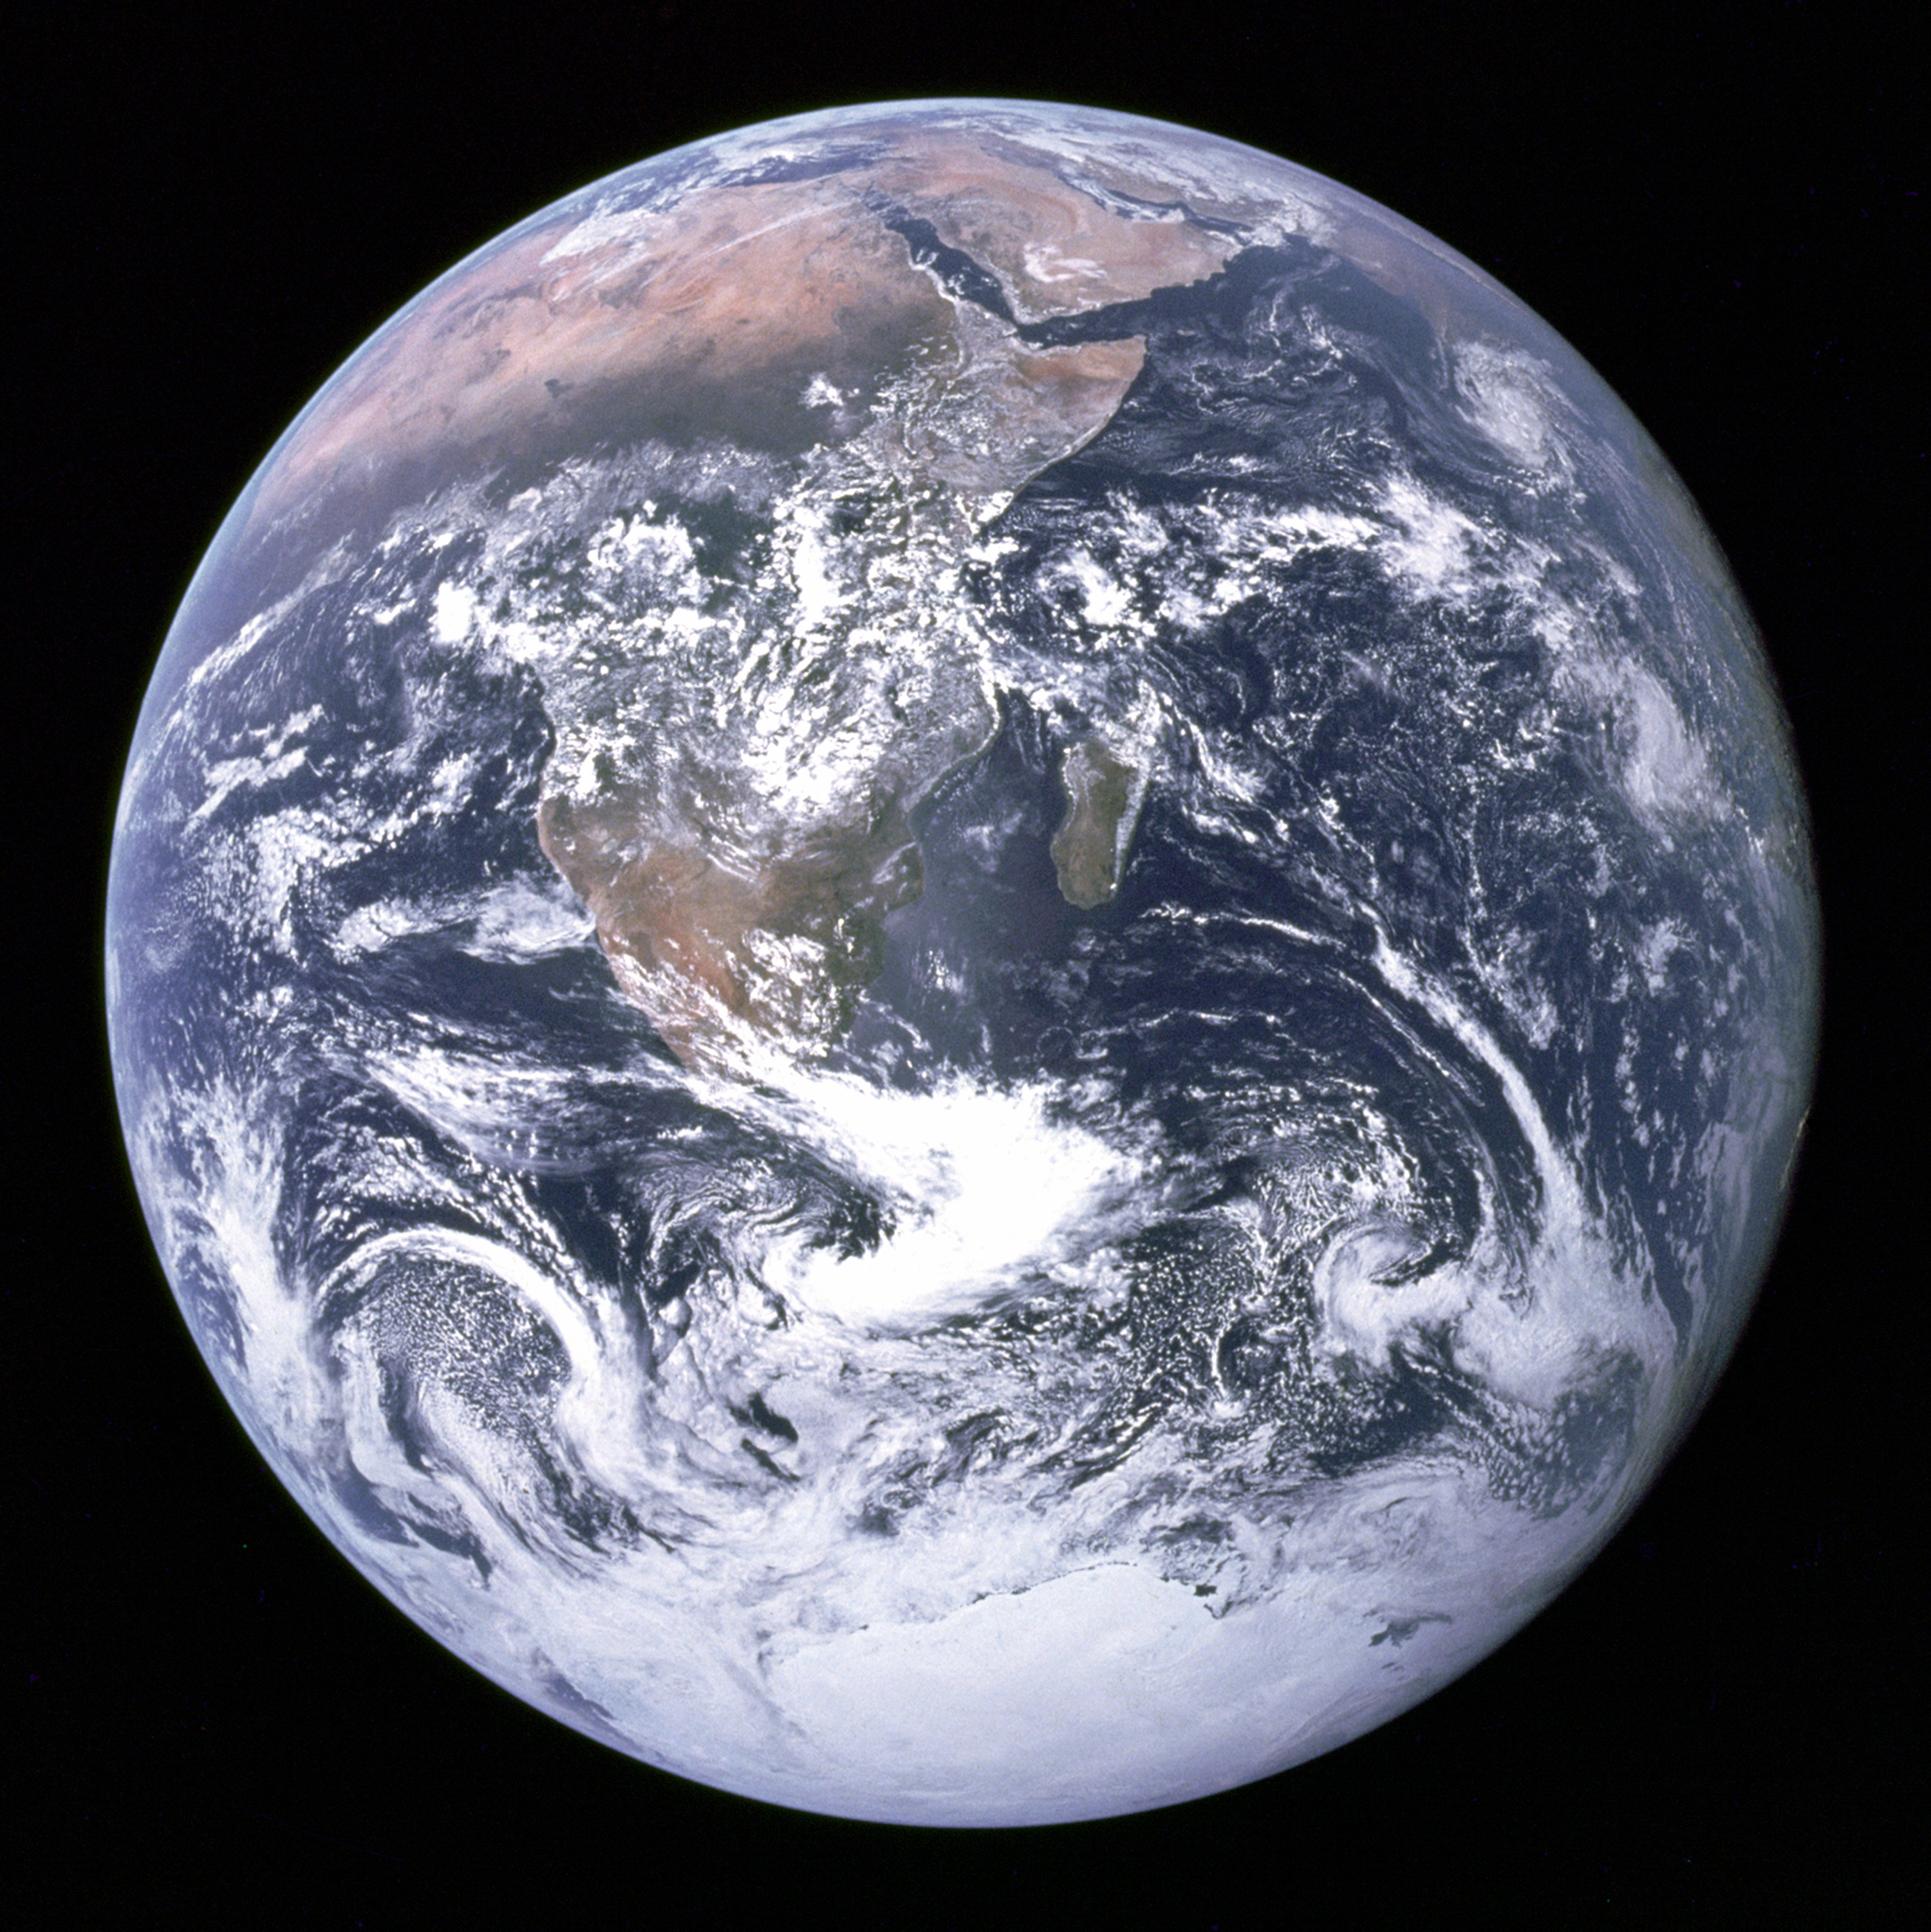 An image of the earth taken from outer space